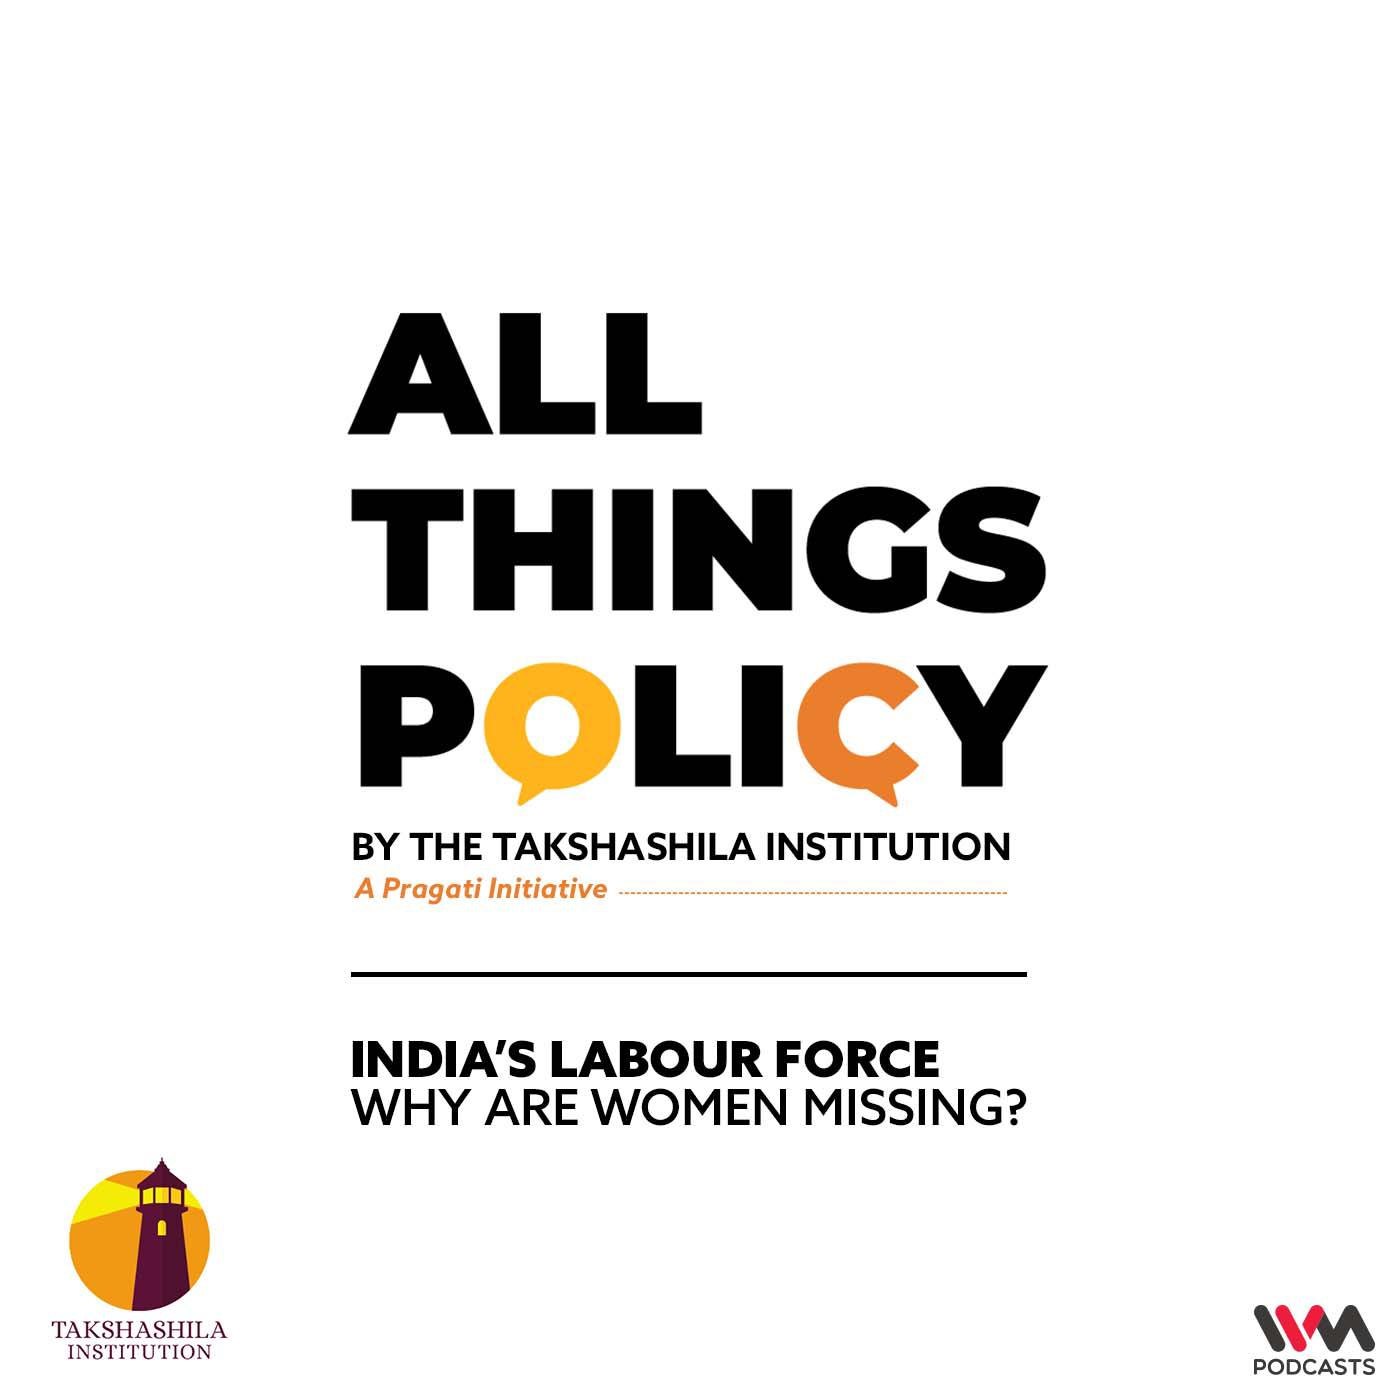 India's labour force: Why are women missing?